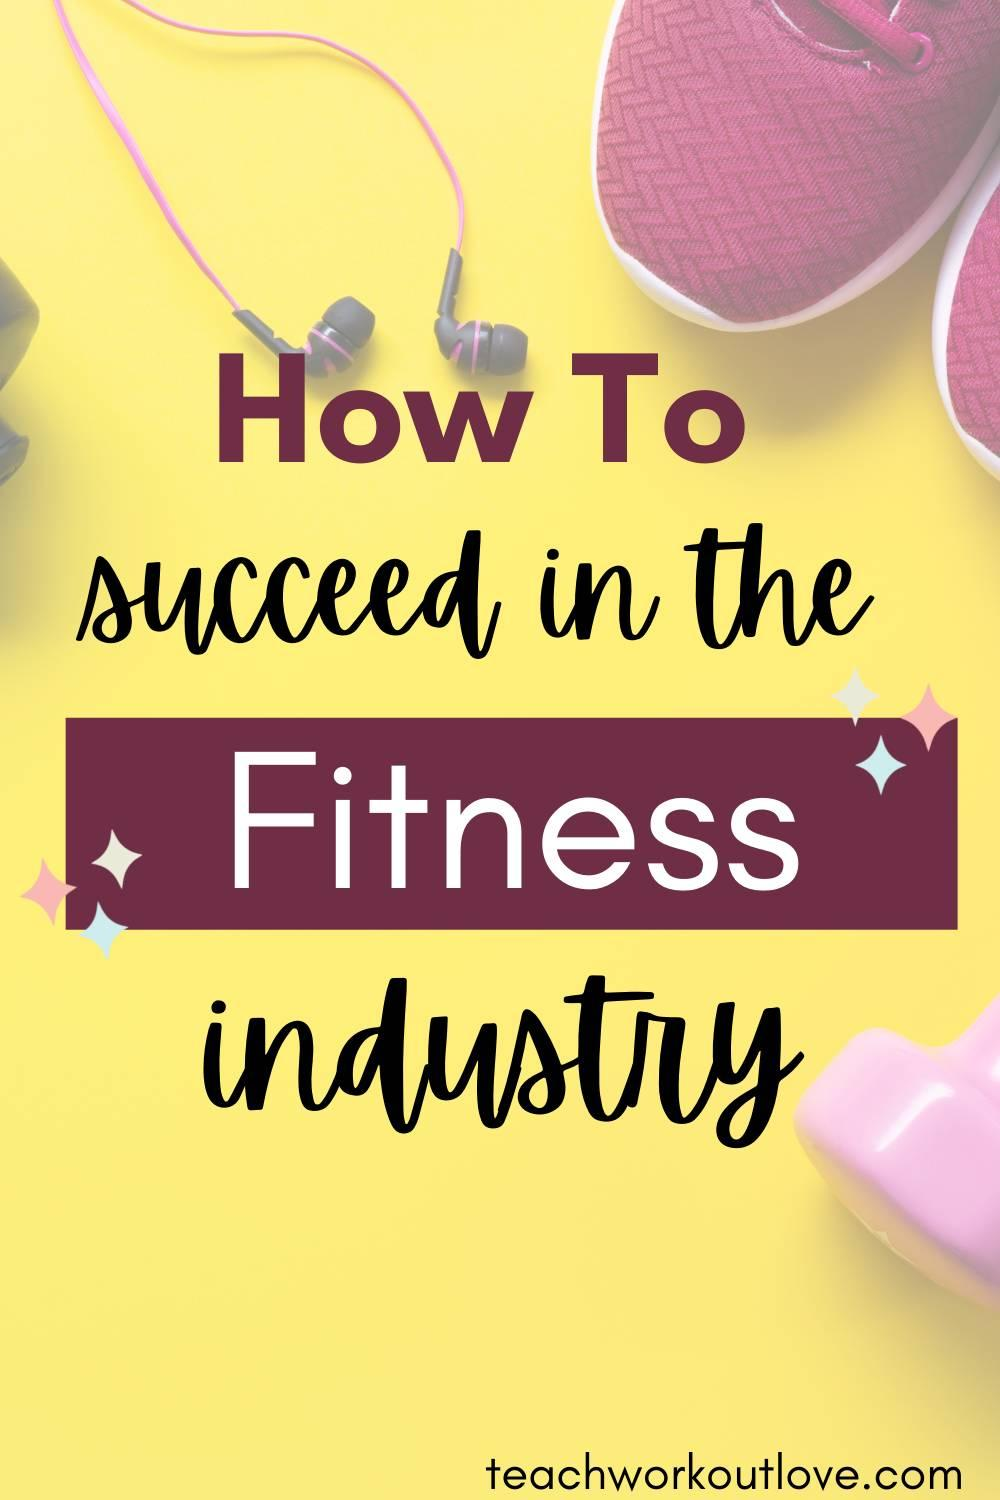 In the fitness industry, there is a lot of competition. To stand out from the crowd and be successful in this competitive field, you must know what it takes.